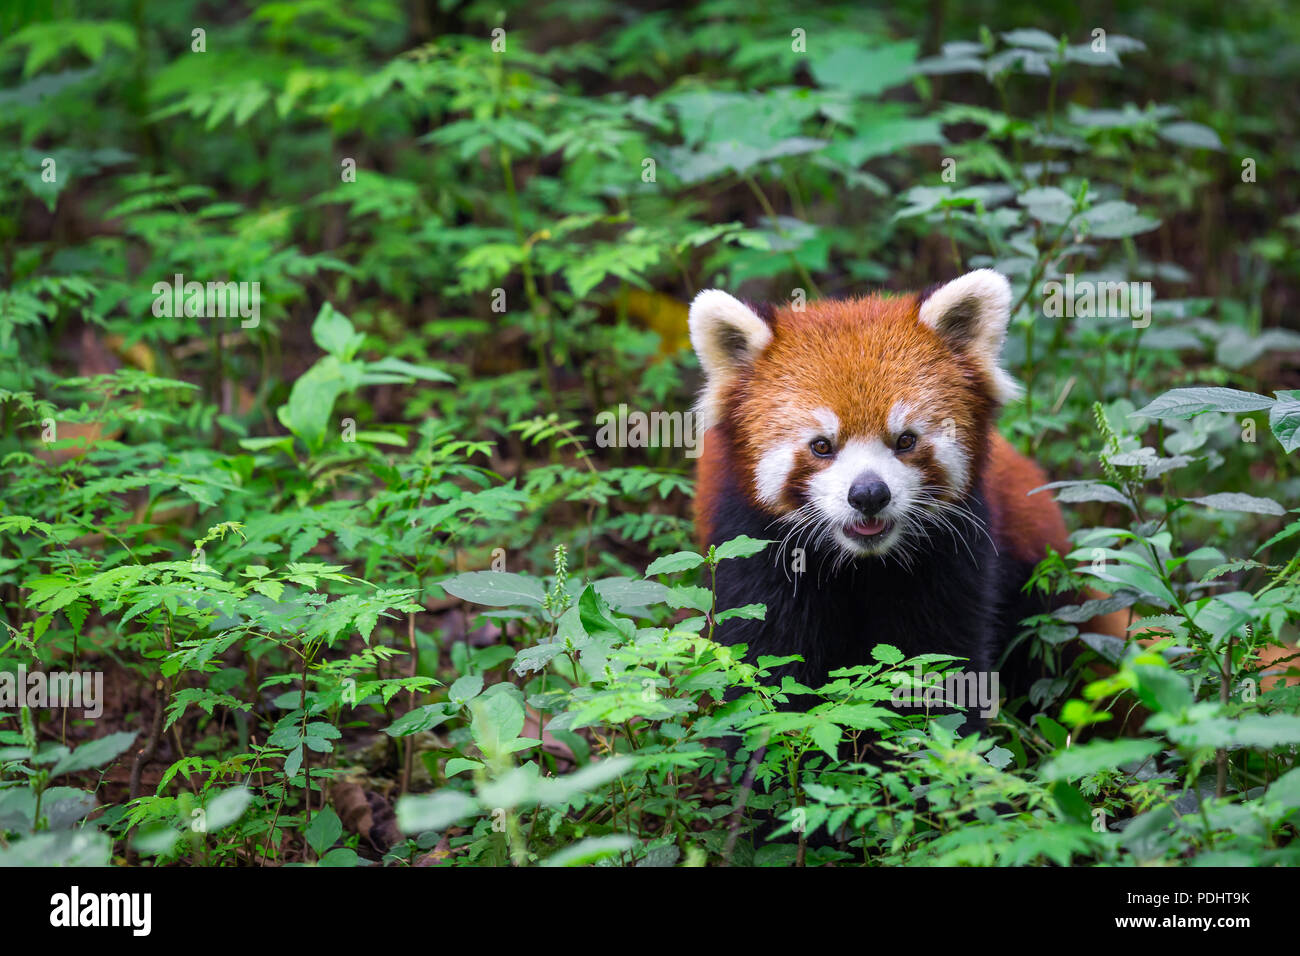 Portrait of a Red Panda , Ailurus fulgens , fire fox surrounded by plants - Stock Image